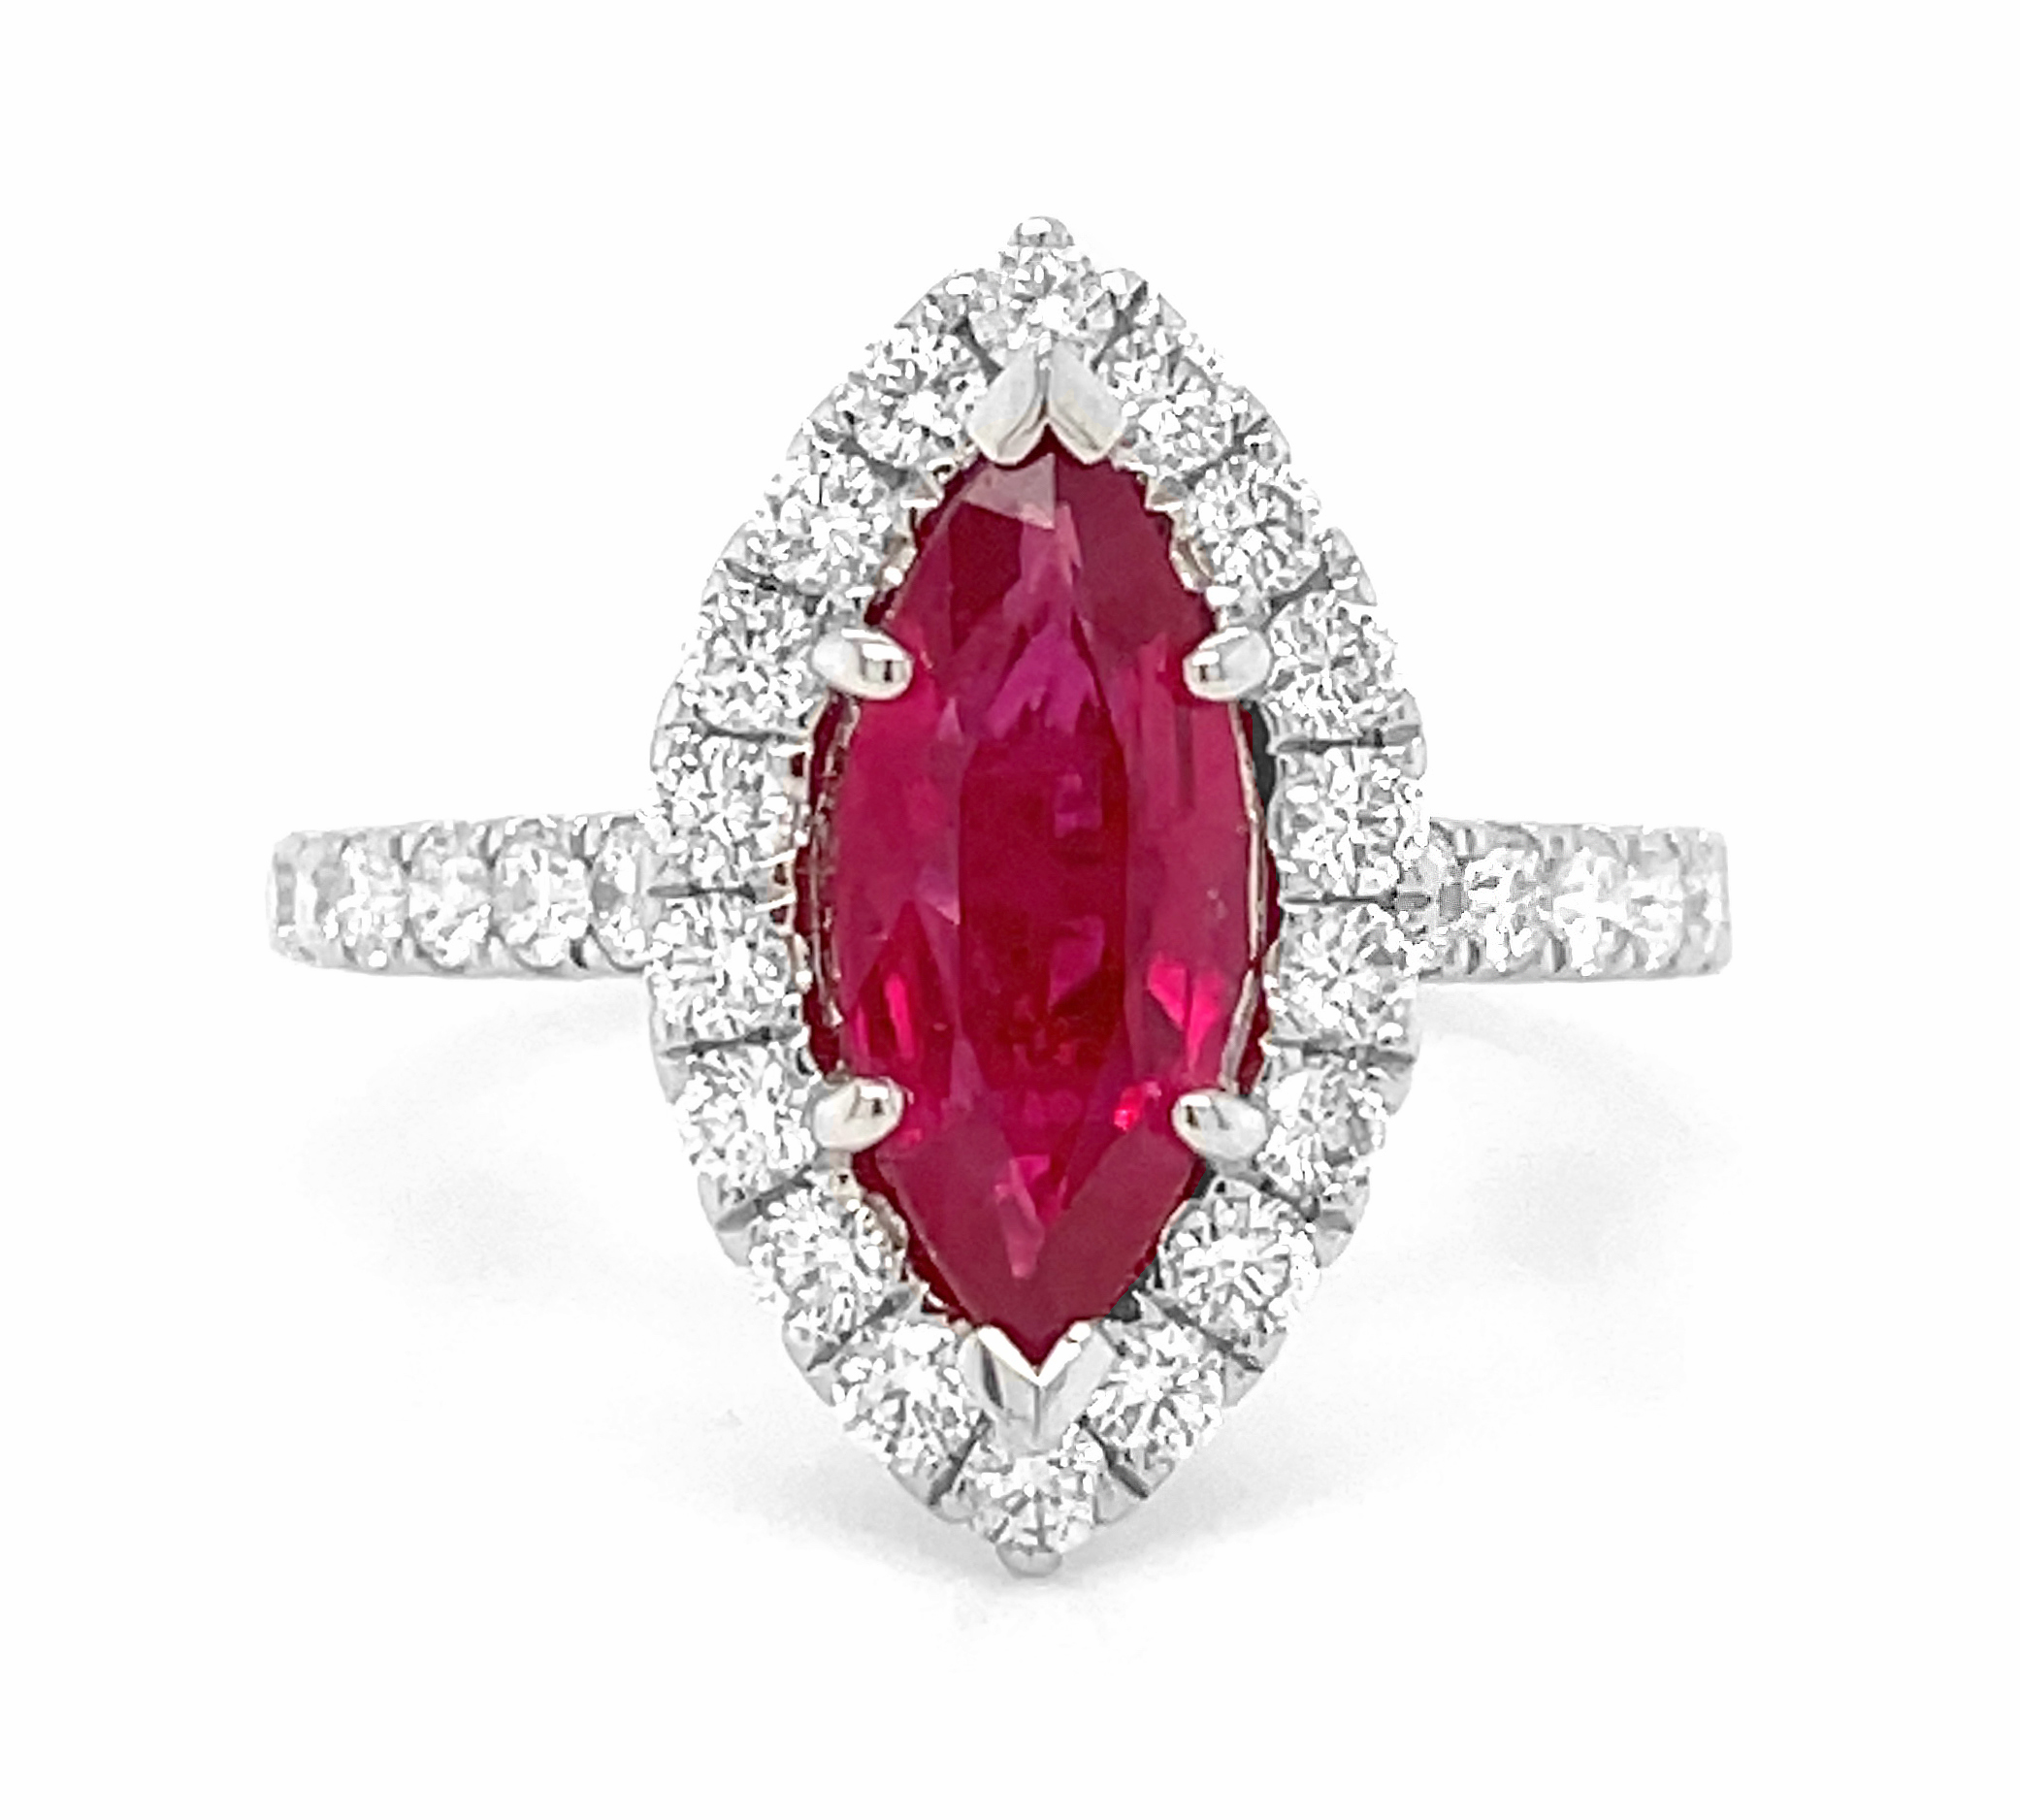 18k White Gold Marquise Ruby & Brilliant Cut Diamond Cluster Ring